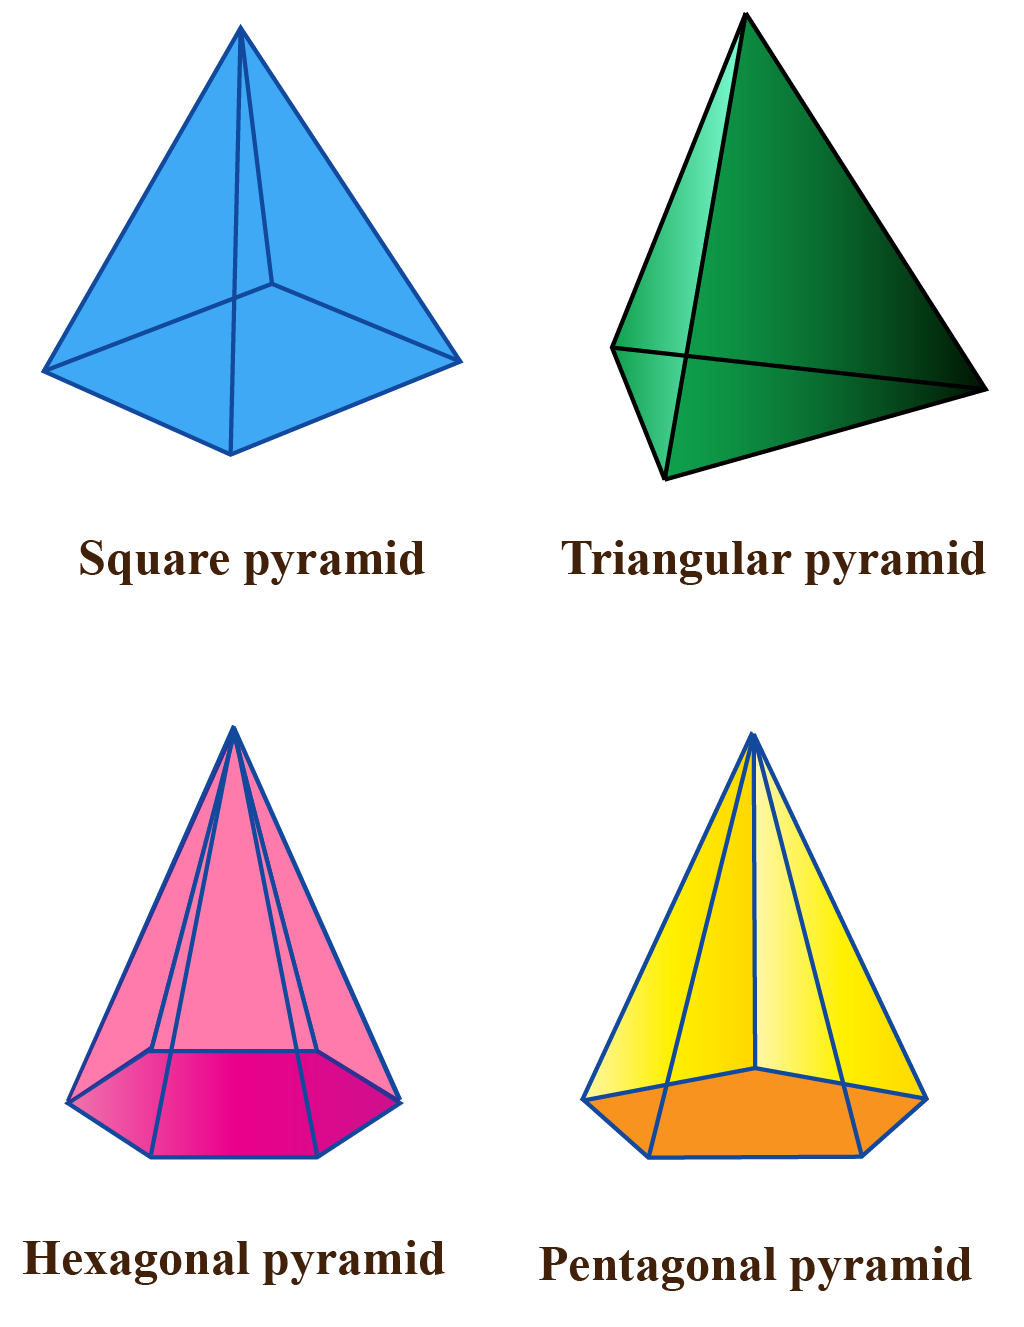 polygon based pyramids - square, pentagonal, hexagonal, triangular